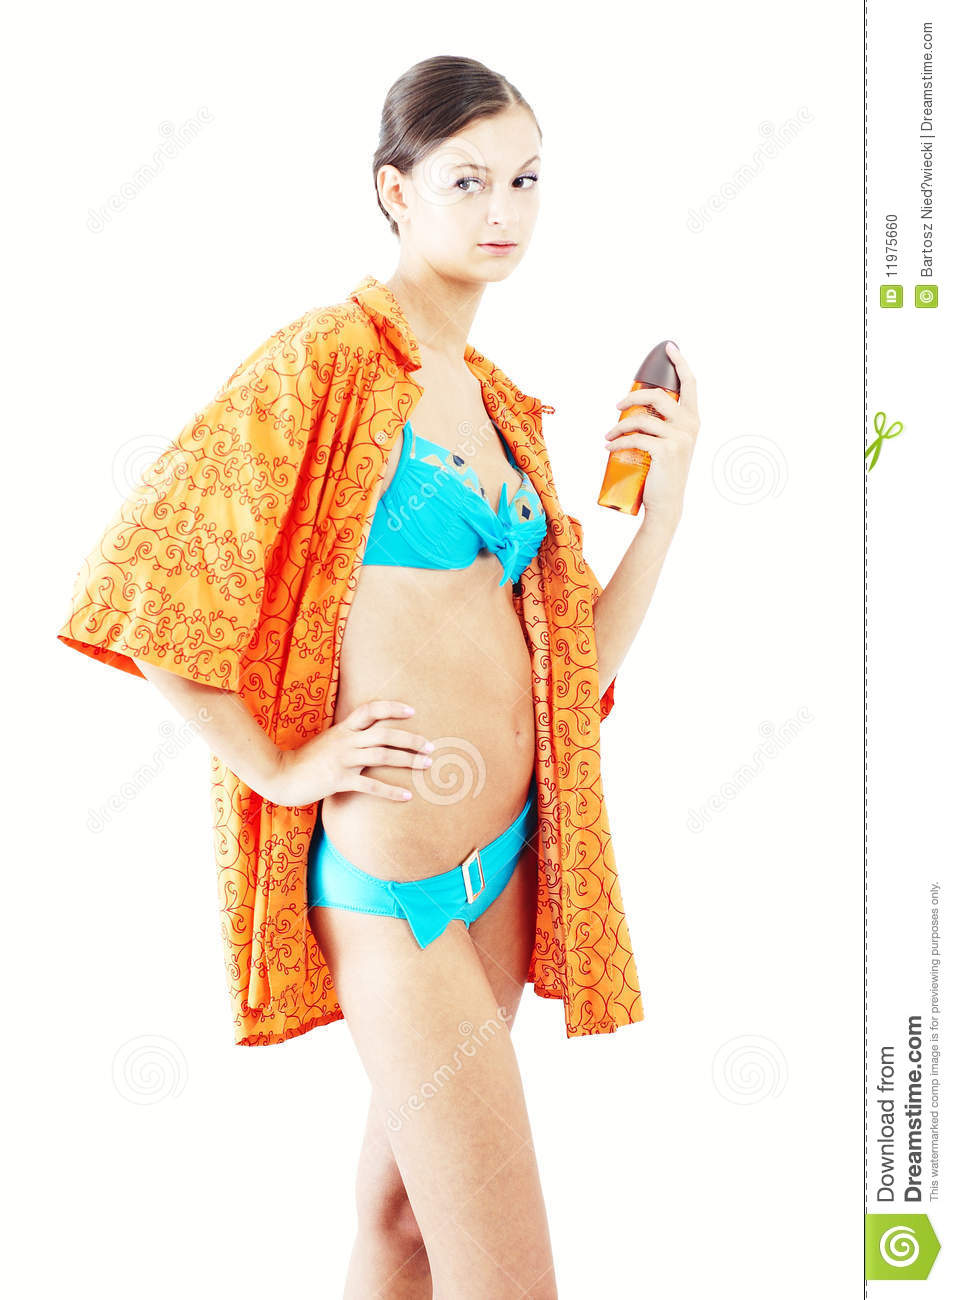 Nice Girl Preparing To Take A Shower Stock Photo Image Of Female